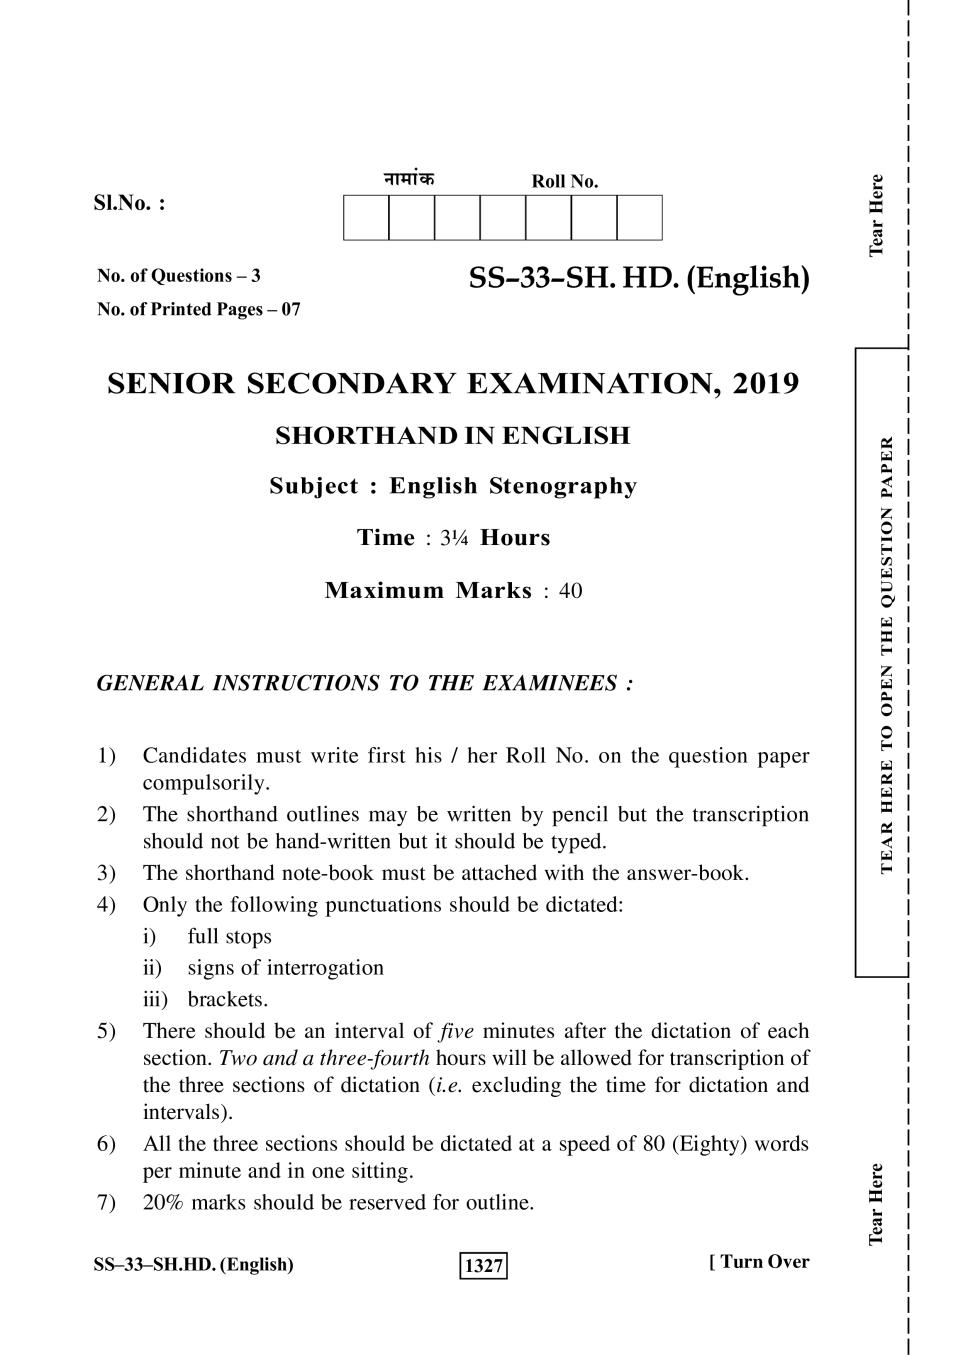 Rajasthan Board Sr. Secondary Sh-Hd-English Question Paper